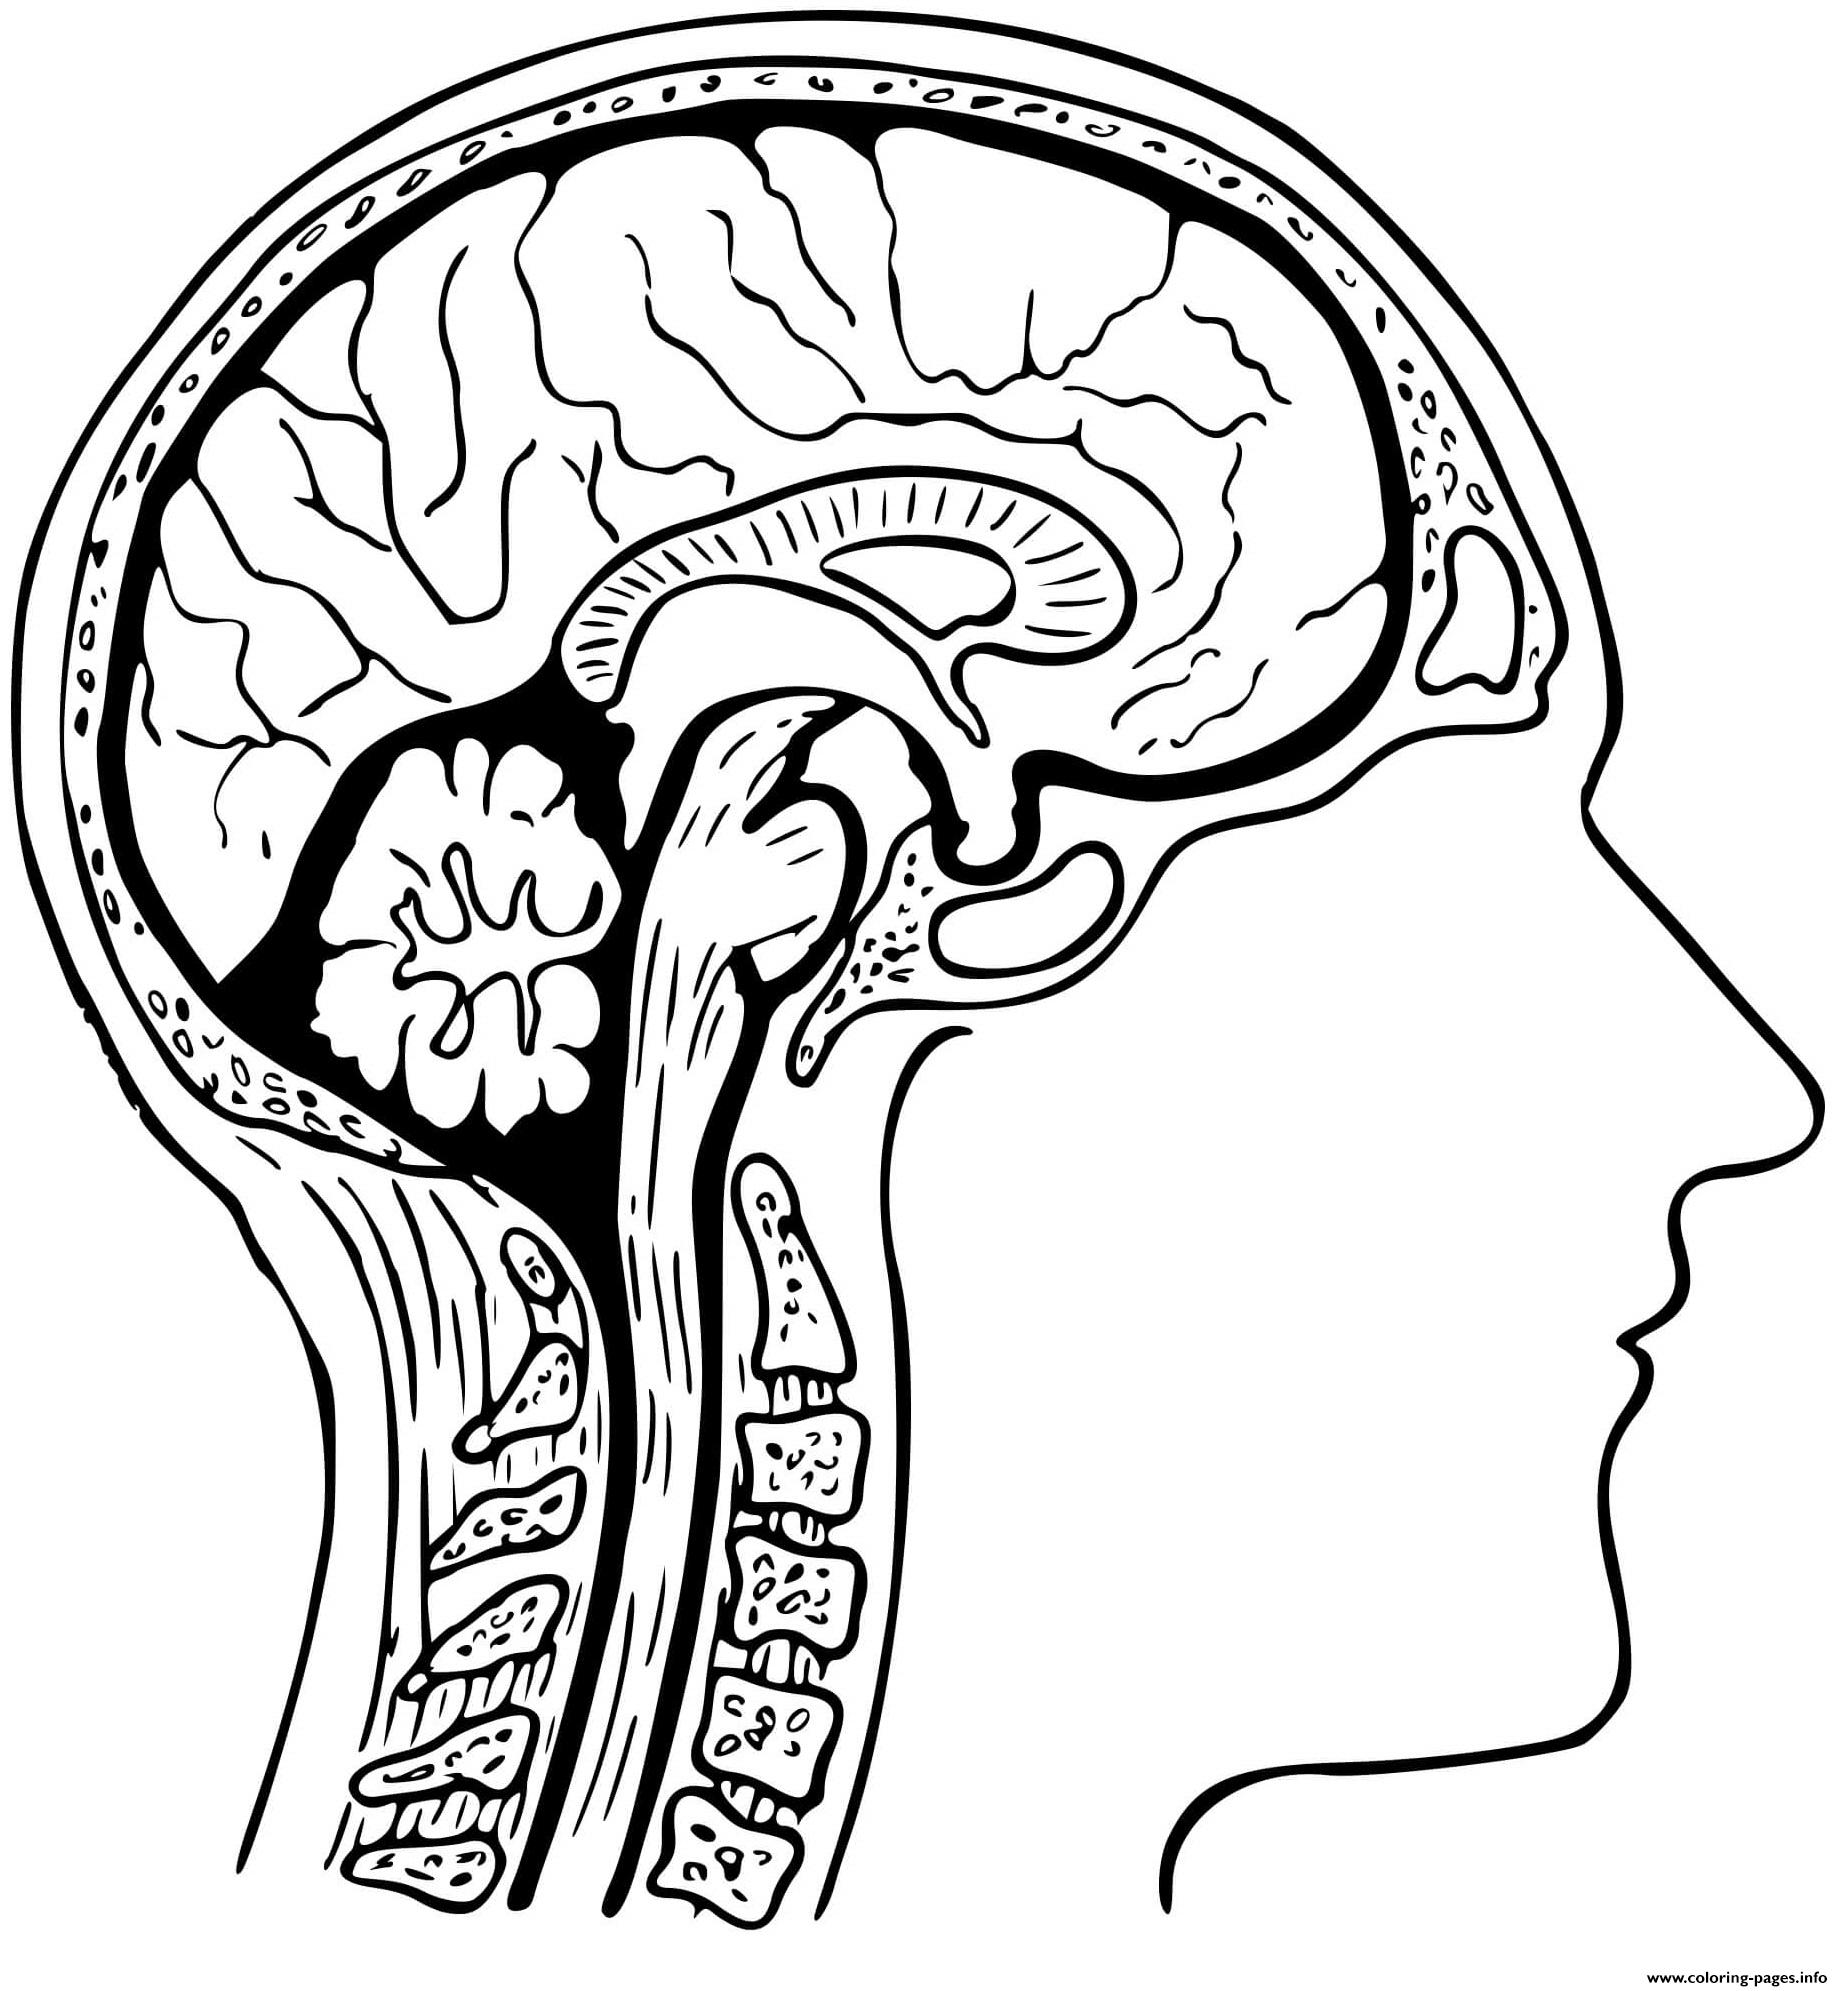 Human Brain Coloring Pages Printable